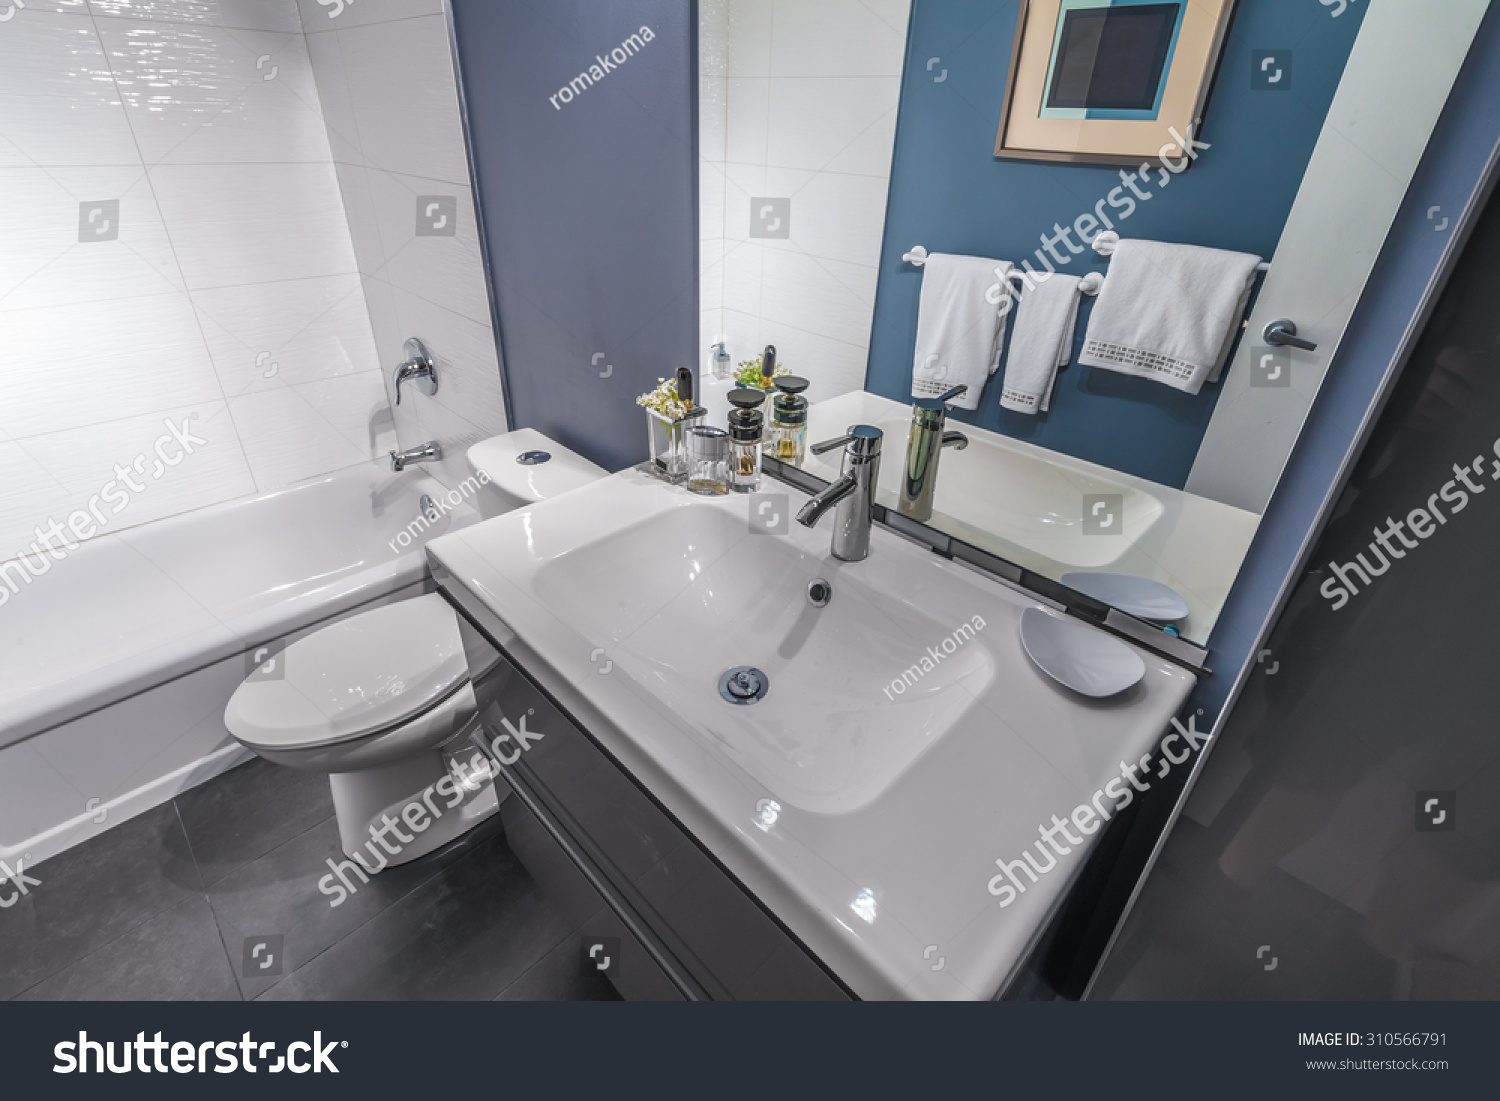 Nicely Decorated Bathrooms  28 Images  Nicely Decorated. Decorative Towels. Nursery Decor Girl. Florida Room Cost. Decorative Wood Trim. Living Room Hutch. Benches For Living Room. Parkland Hospital Emergency Room. Maritime Decor